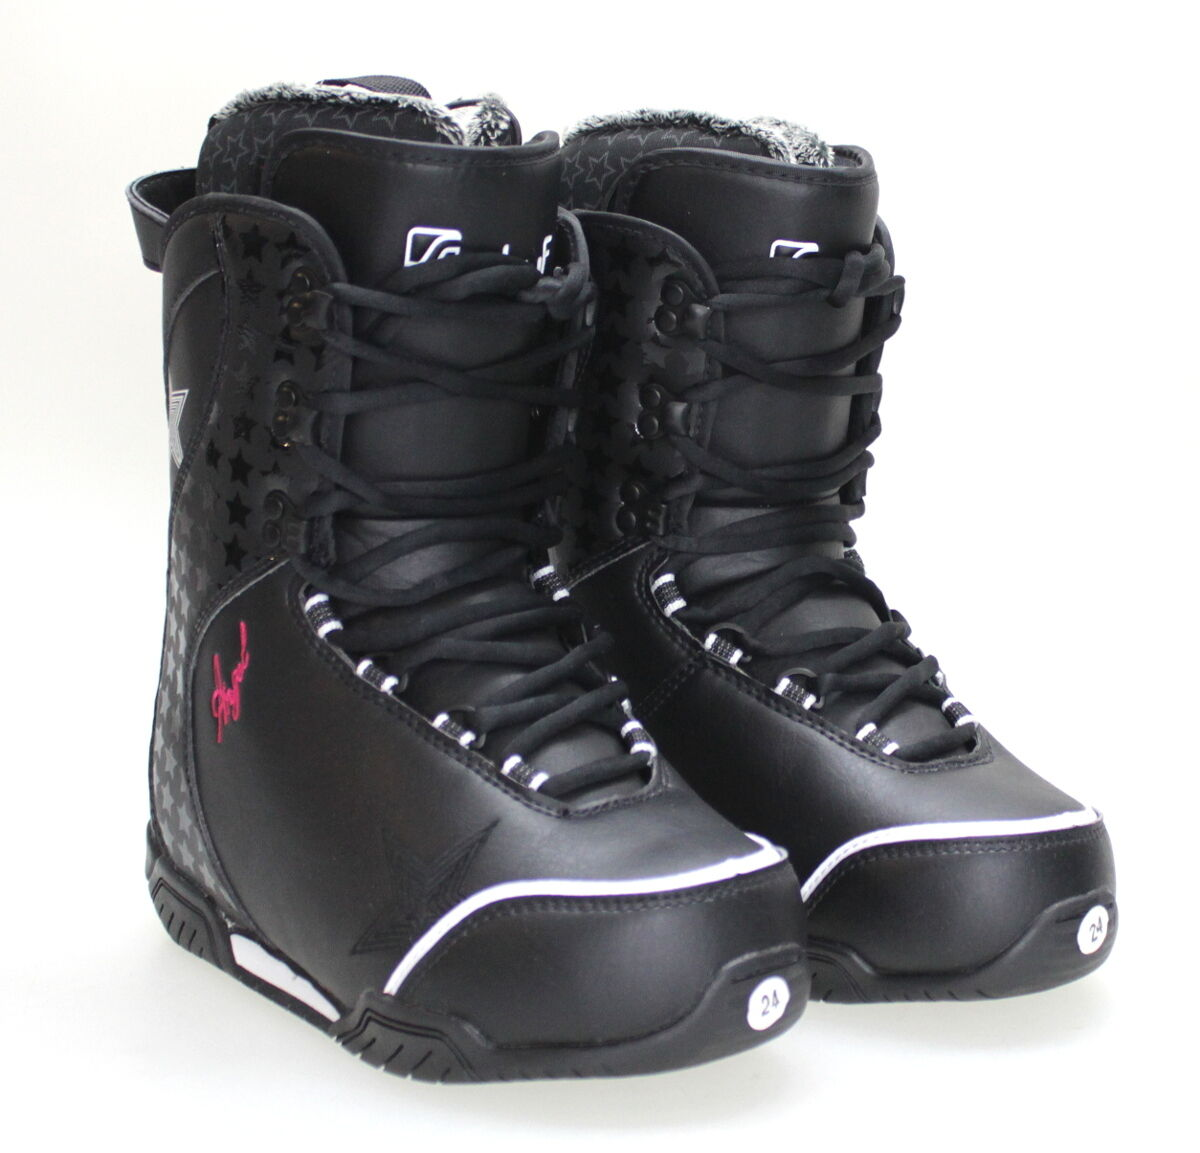 Stuf Angel Soft Boot 40EUR MO 26.0 Snowboard shoes shoes Snowboard Boat S-N